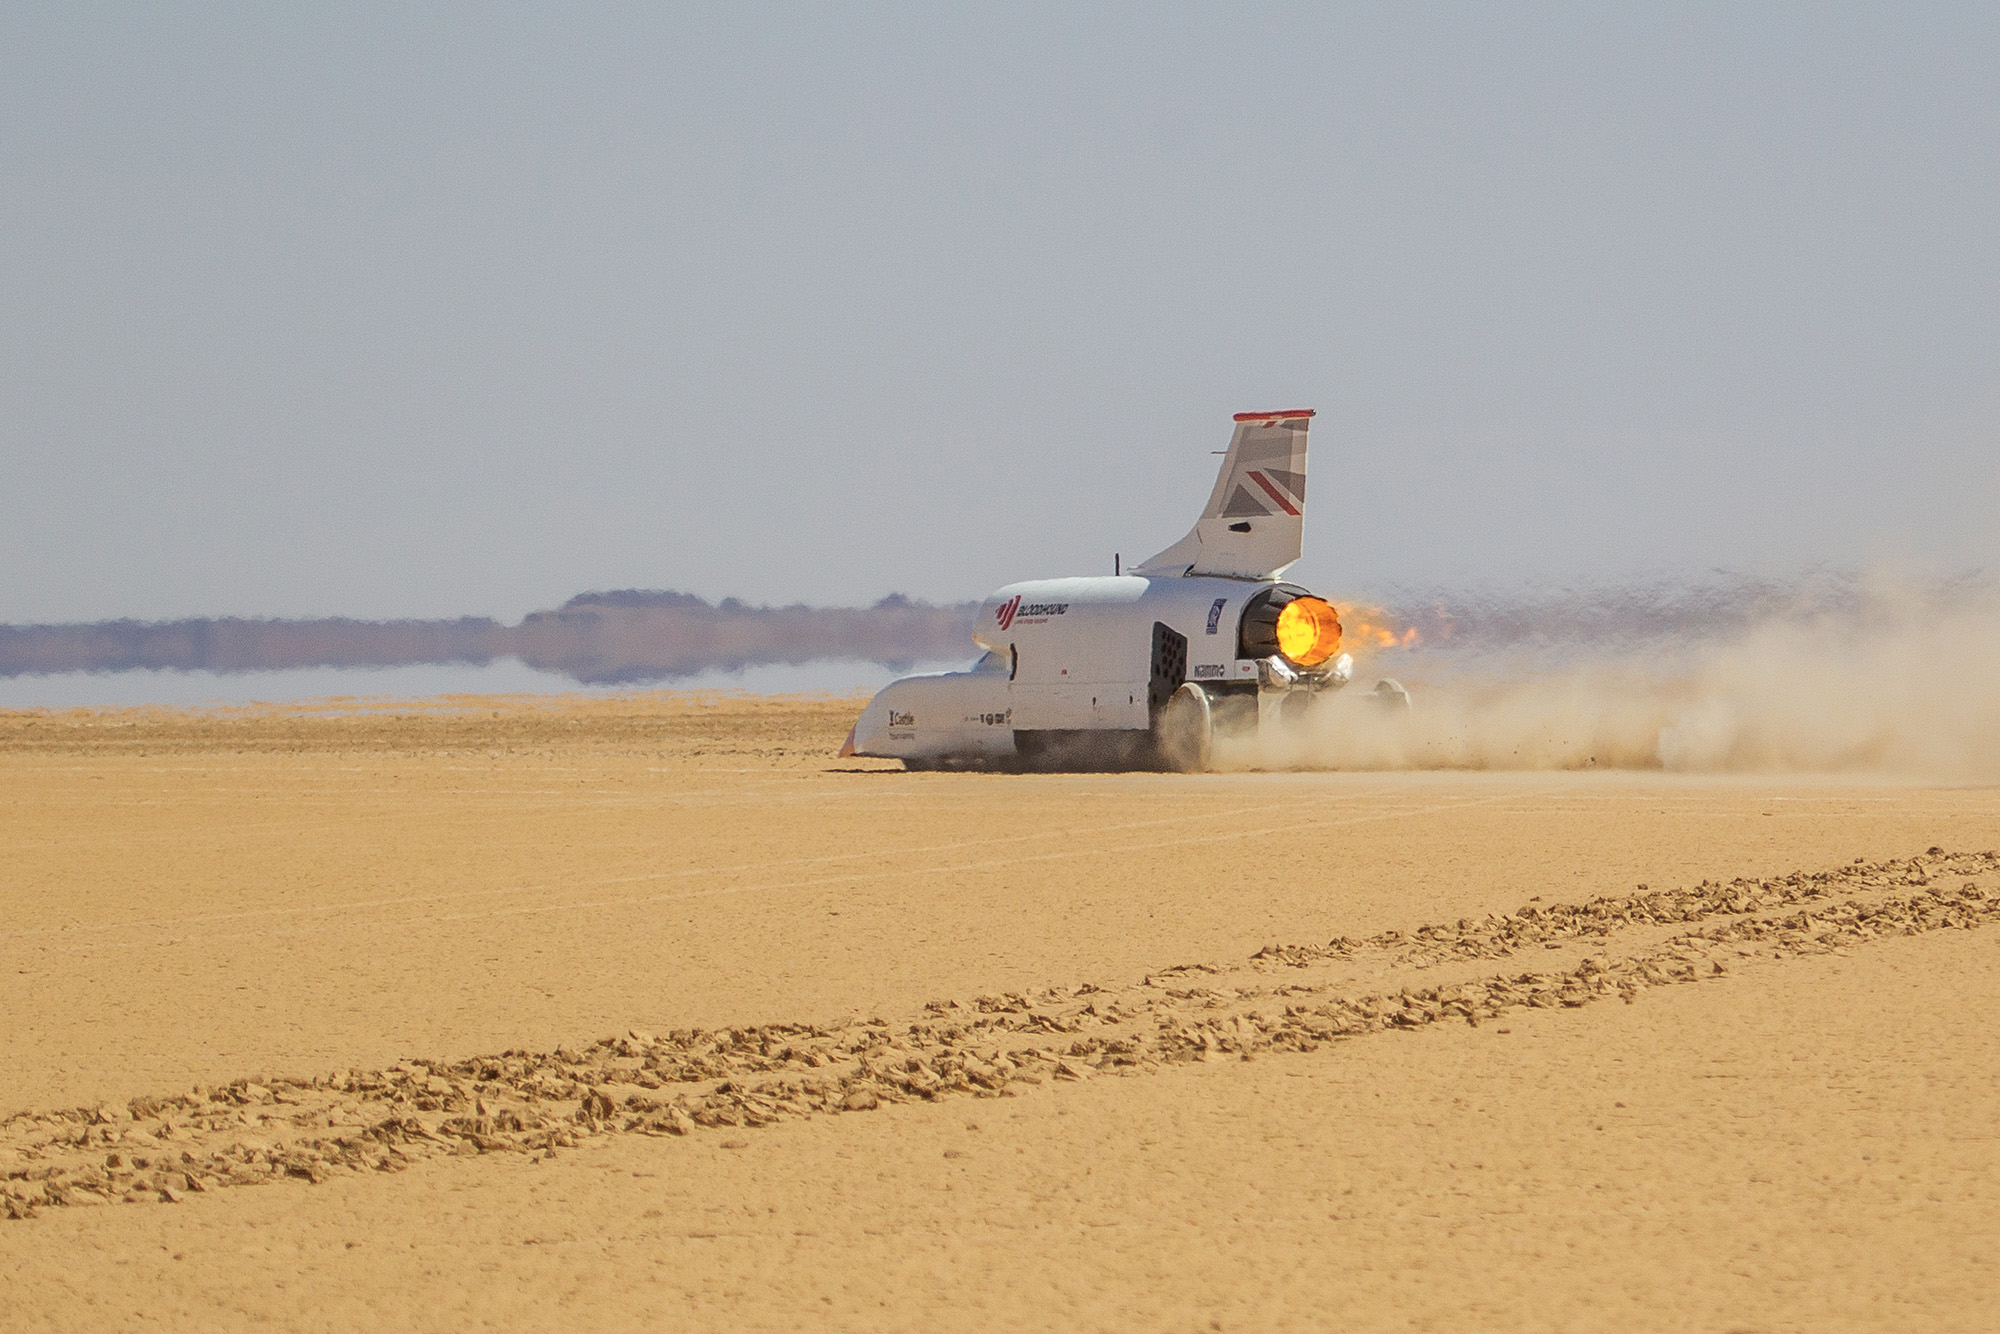 Bloodhound land speed record car tops 600mph in South Africa test